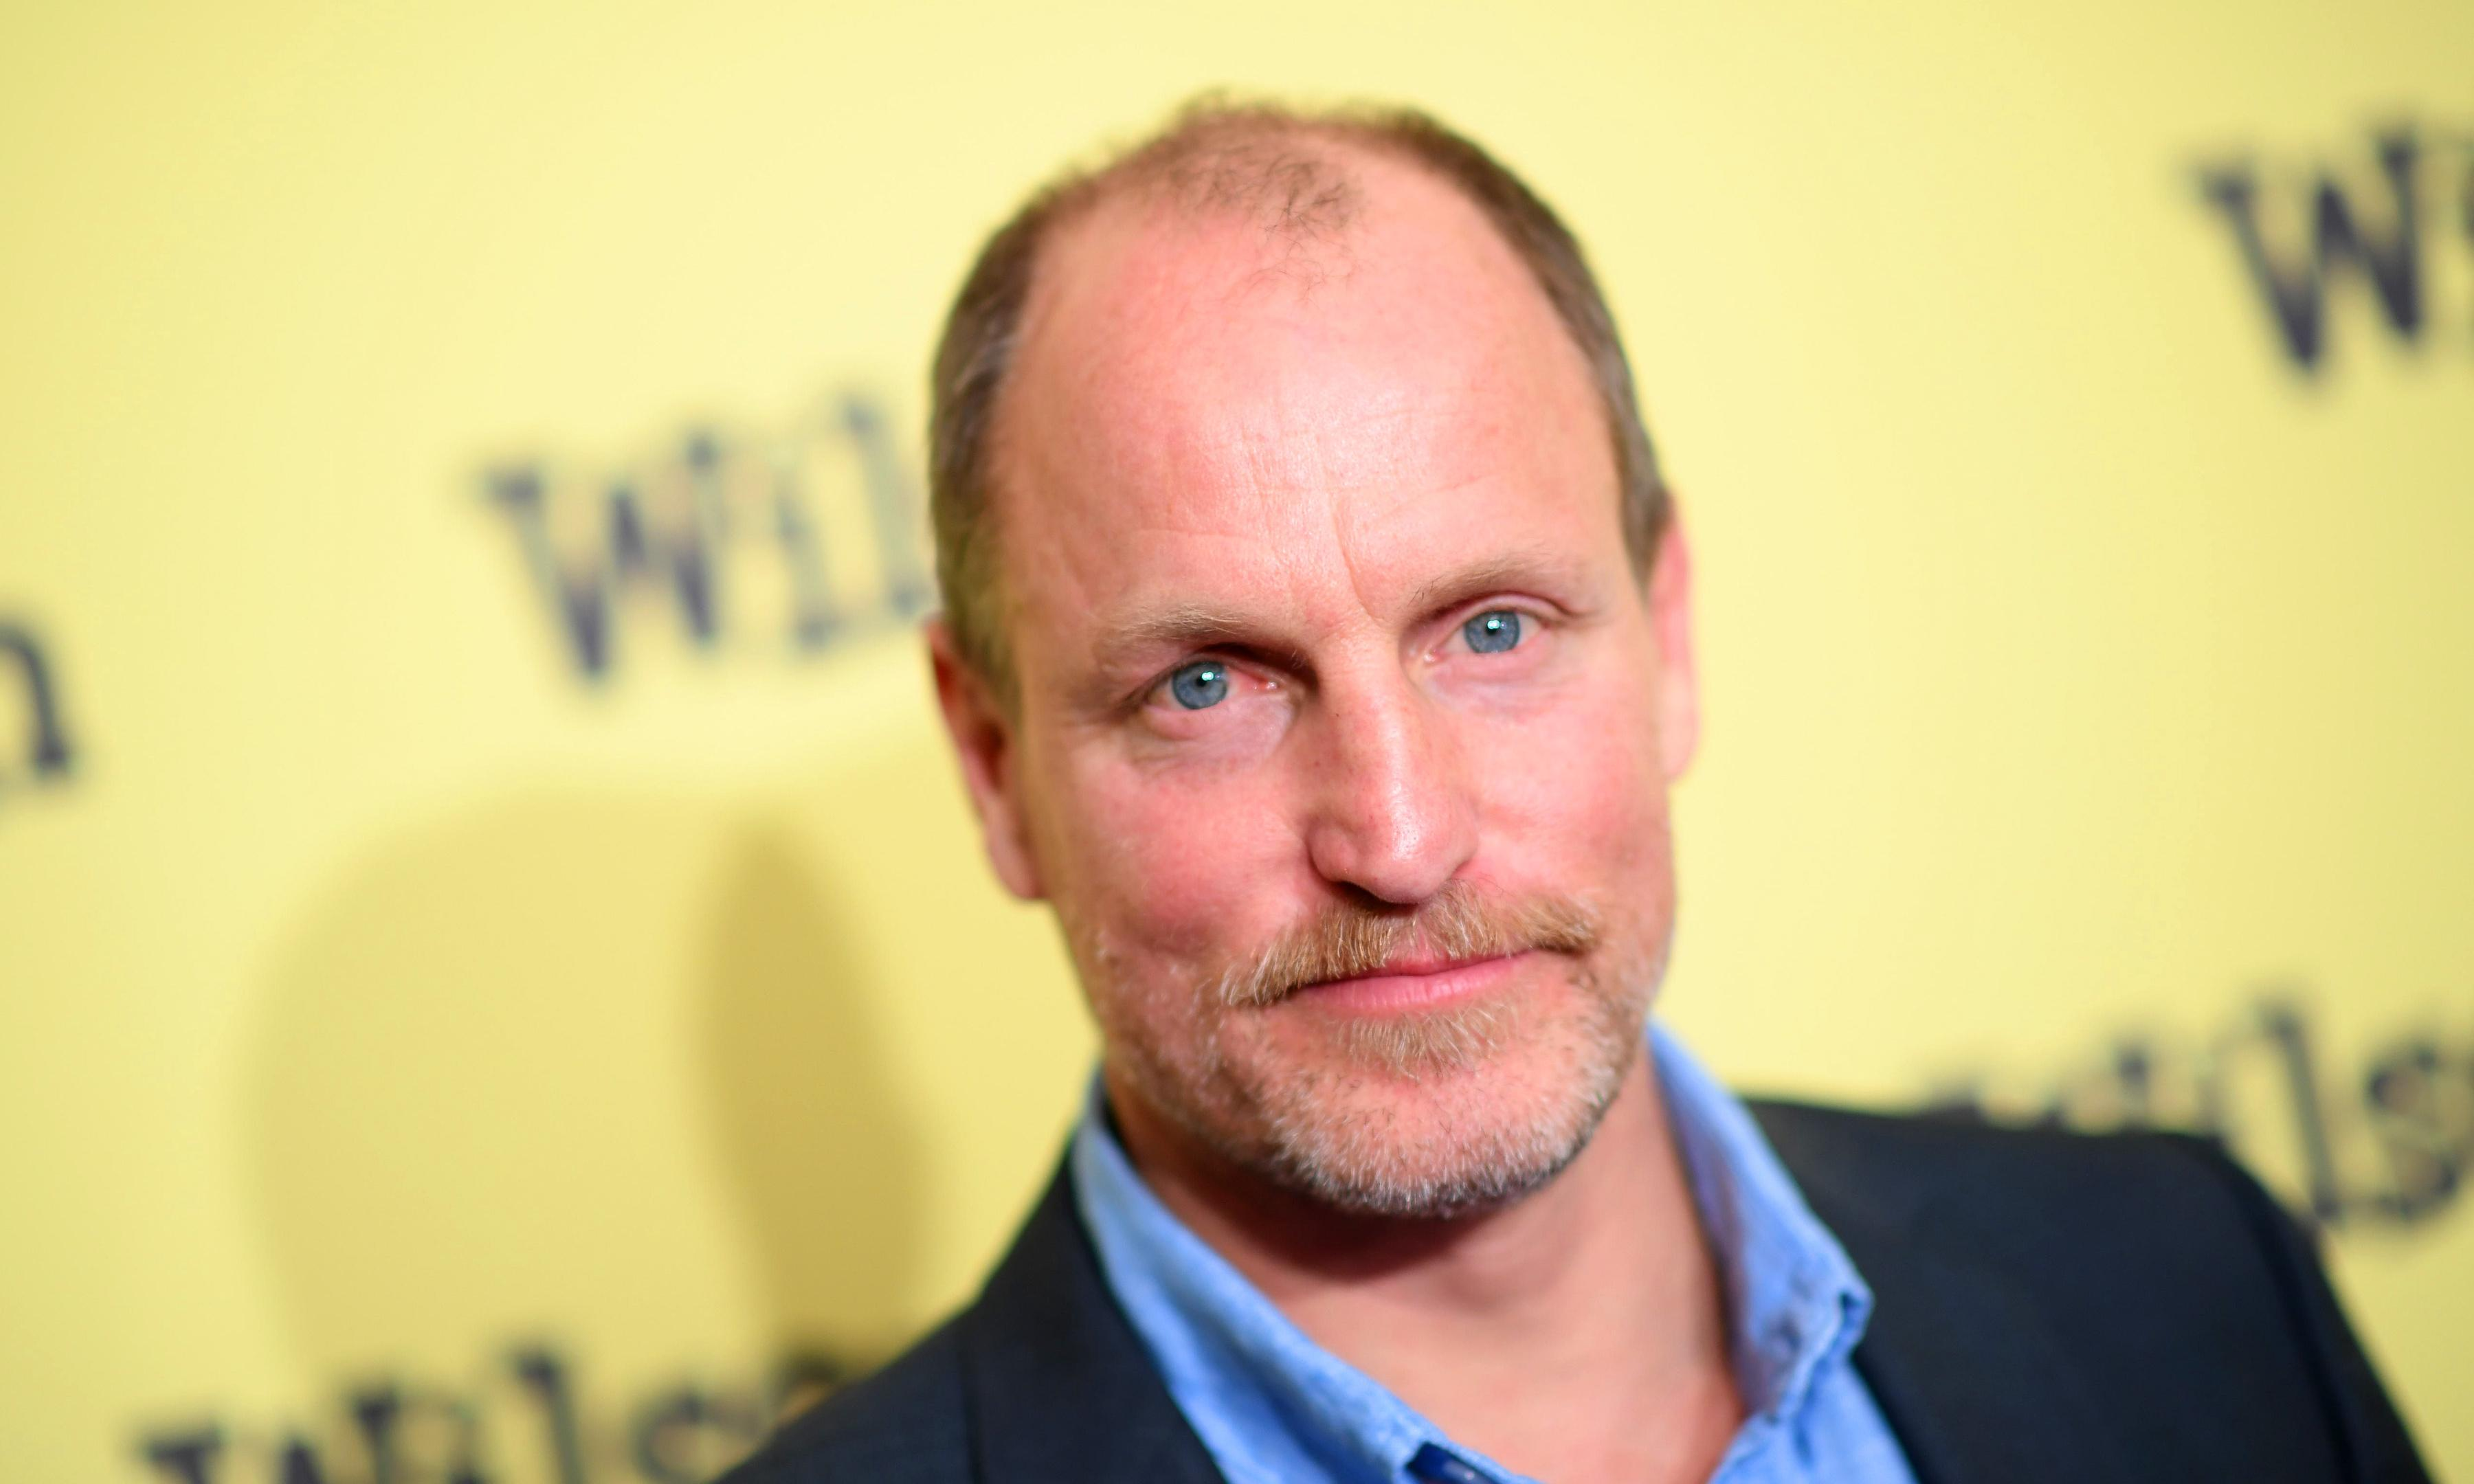 Where everybody knows your face: Woody Harrelson photo used to spot thief